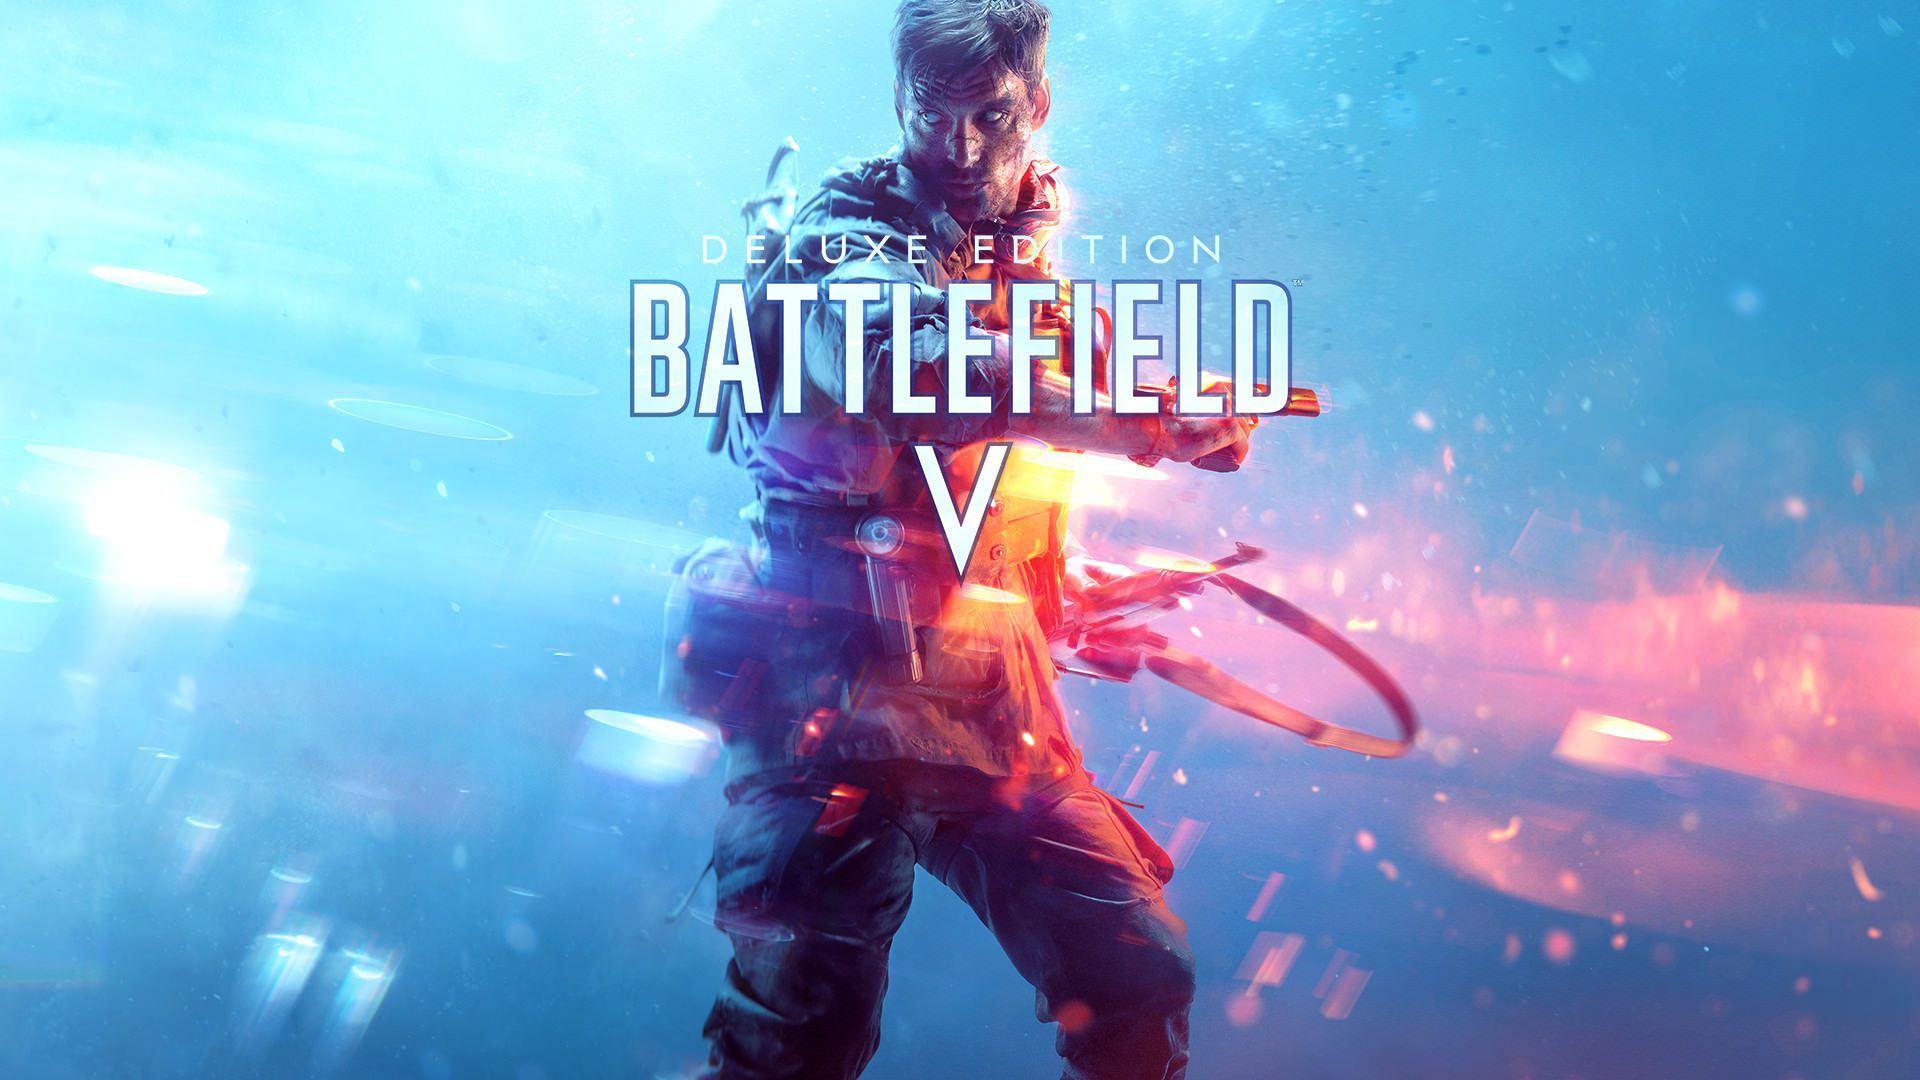 Pin By Gamer Piece On Wallpaper Library Battlefield 5